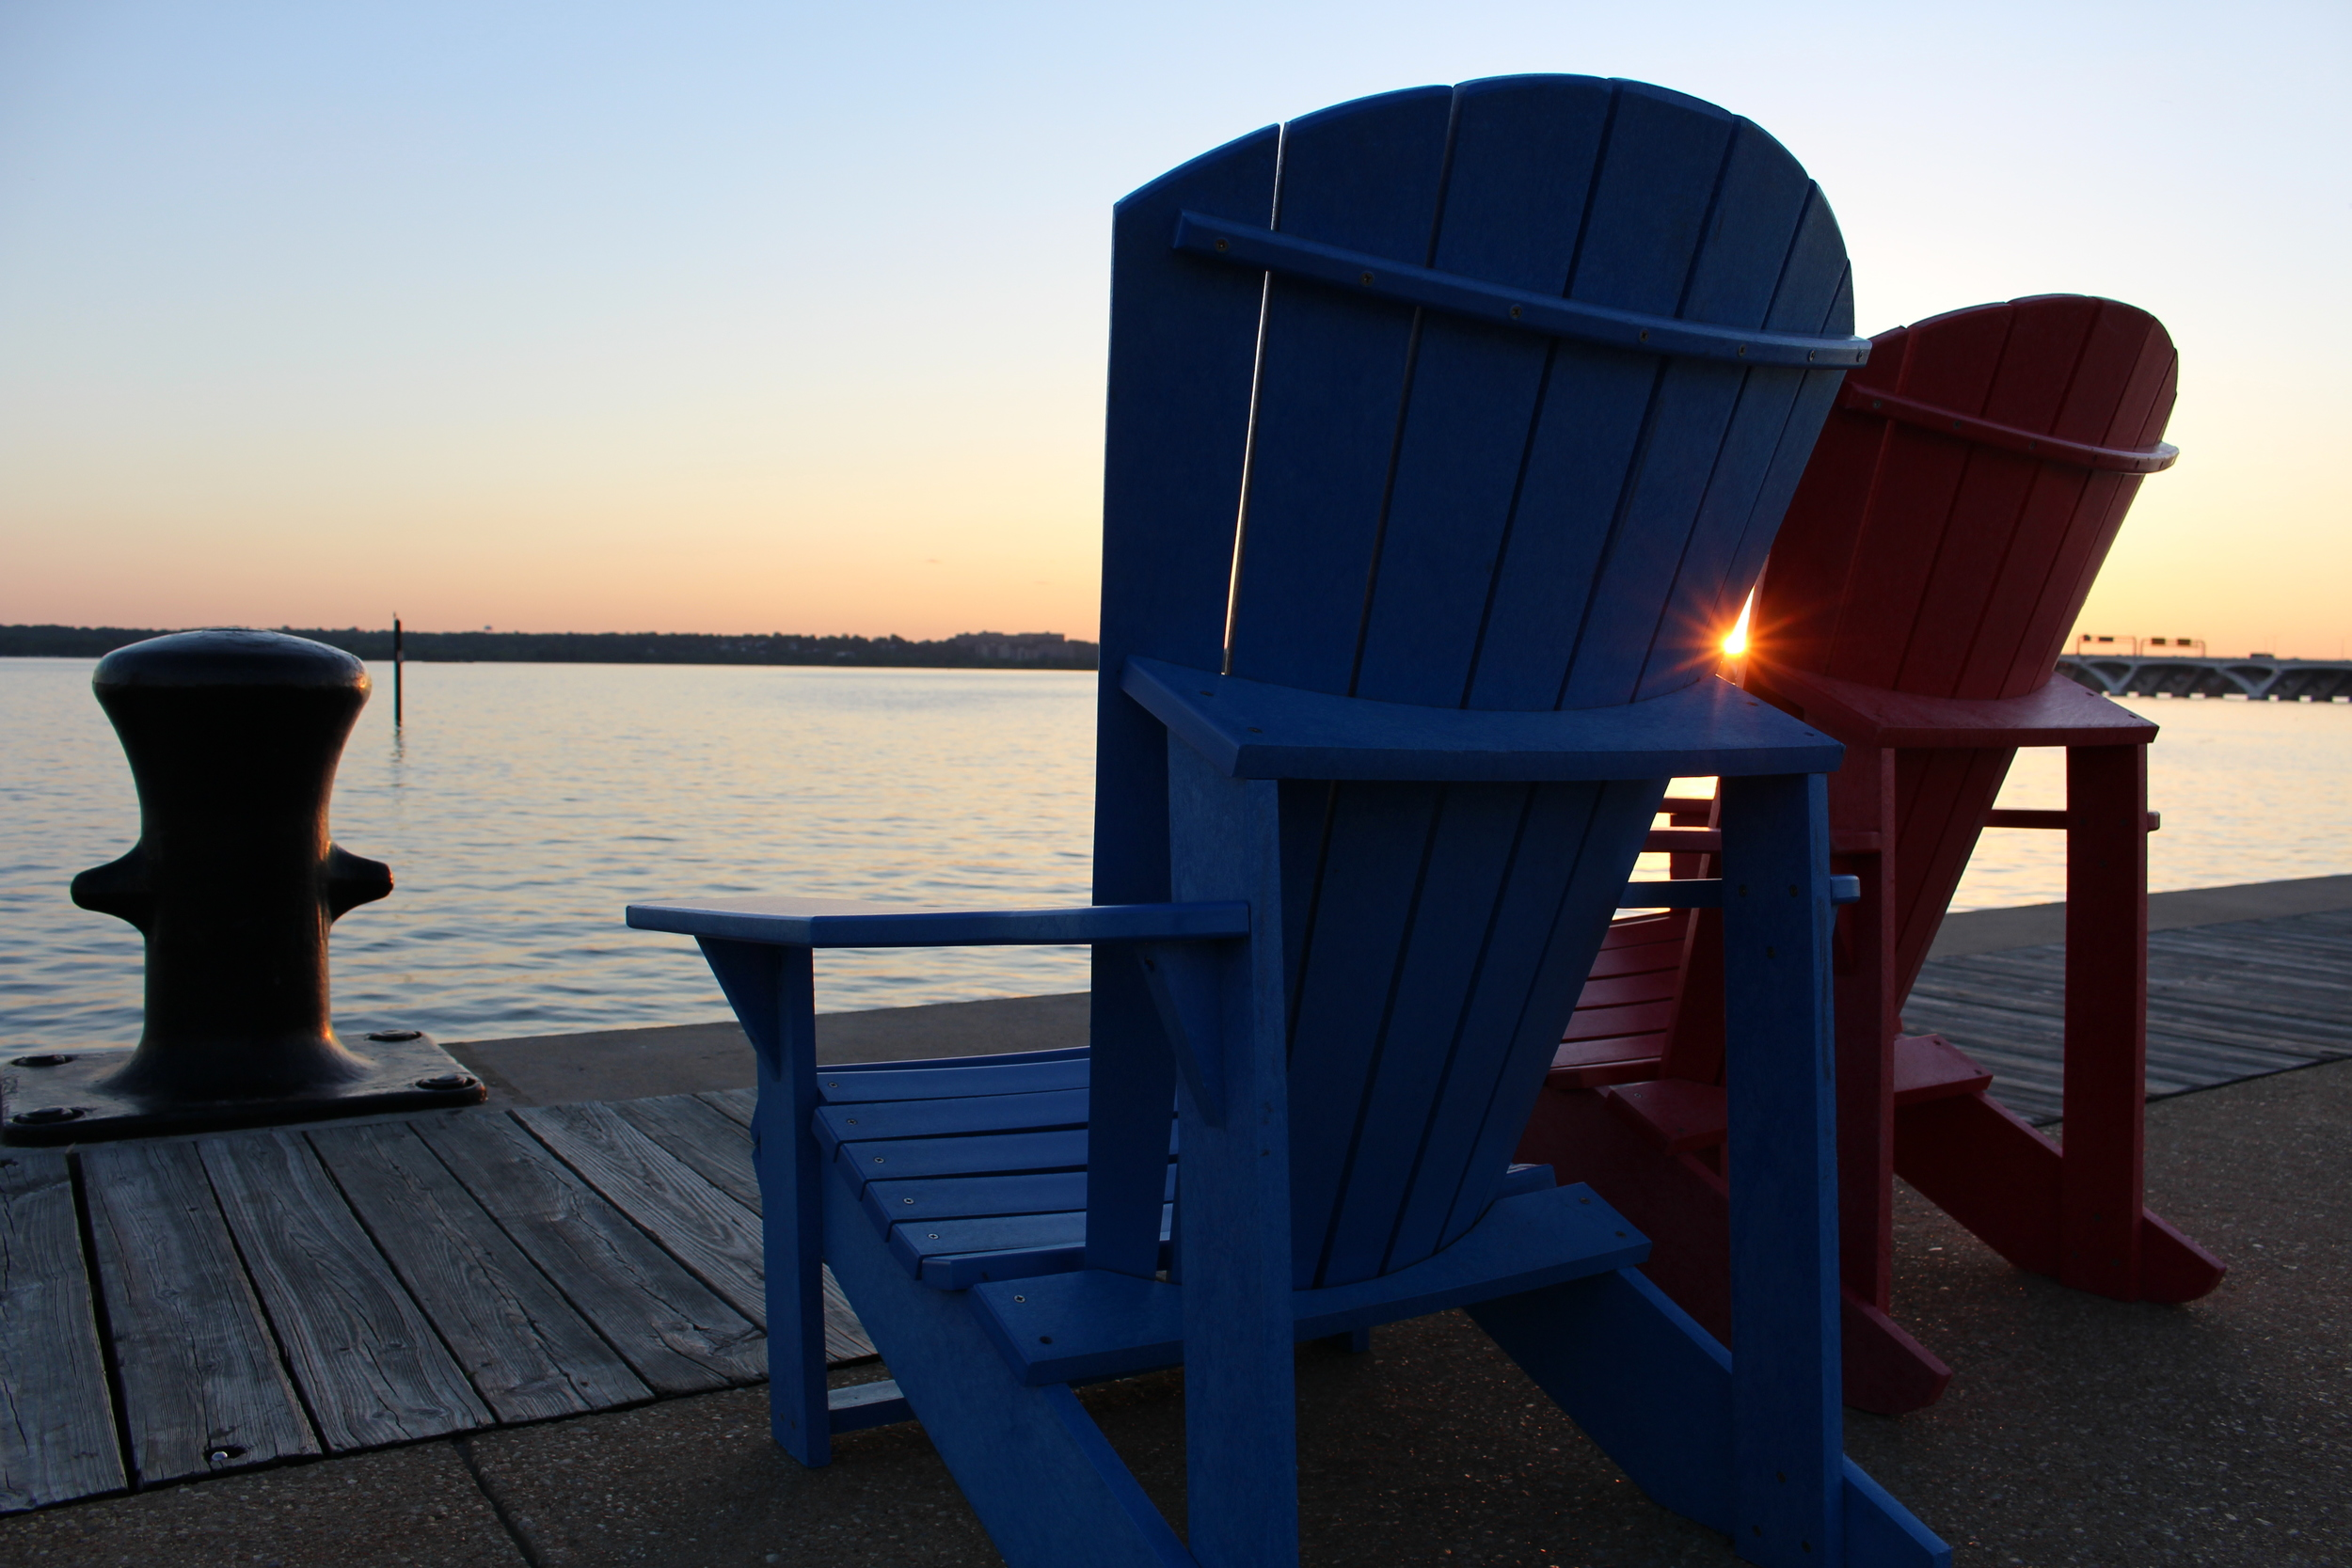 And forget reaching across the aisle, a sunset at National Harbor brings blue and red so close together only a sunburst can fit between them.